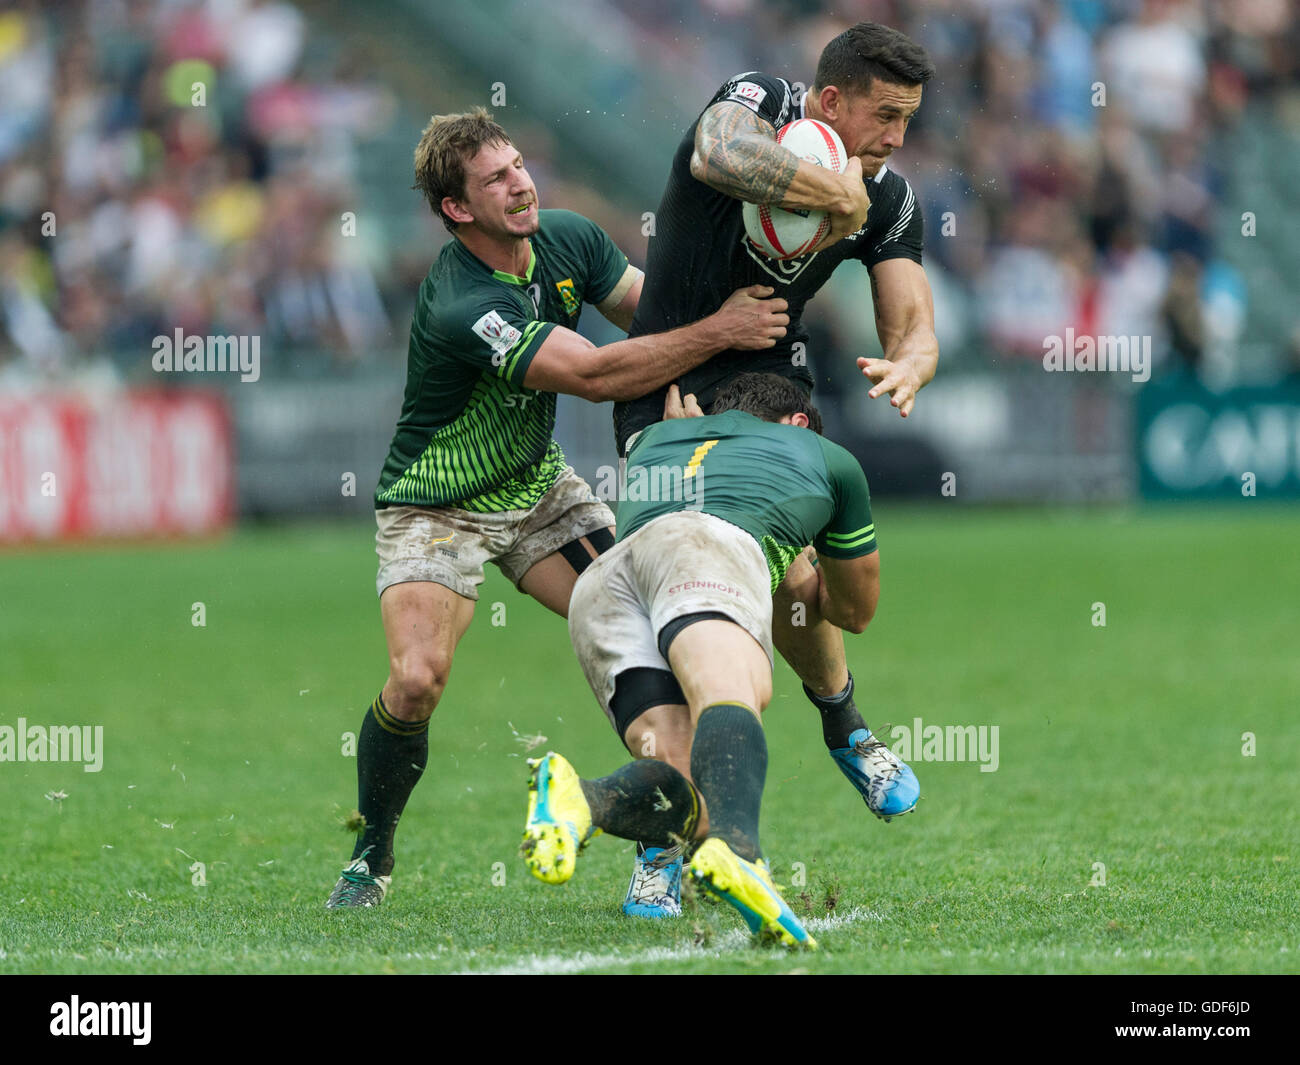 Sonny Bill Williams of New Zealand gets tackled by South Africa players Kwagga Smith and Ryan Kankowski. - Stock Image